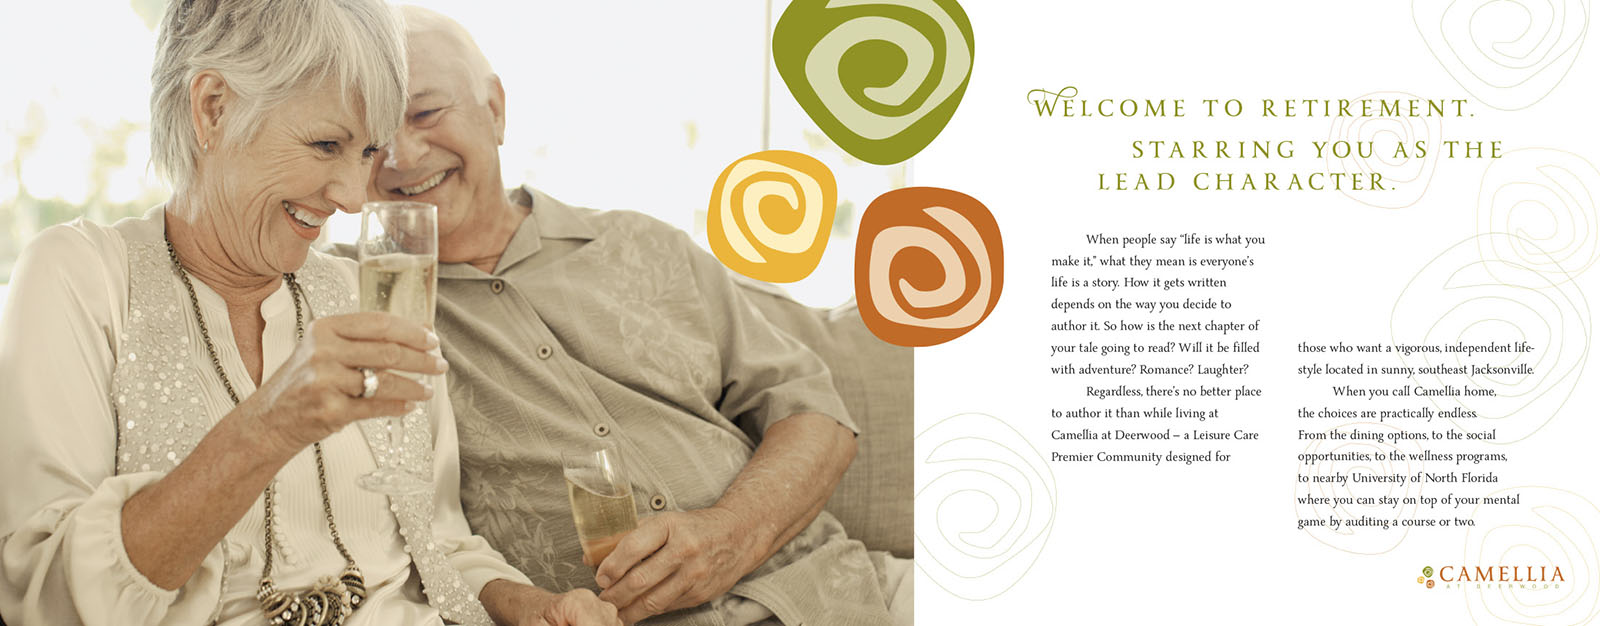 Retirement Community Brochure - Camellia